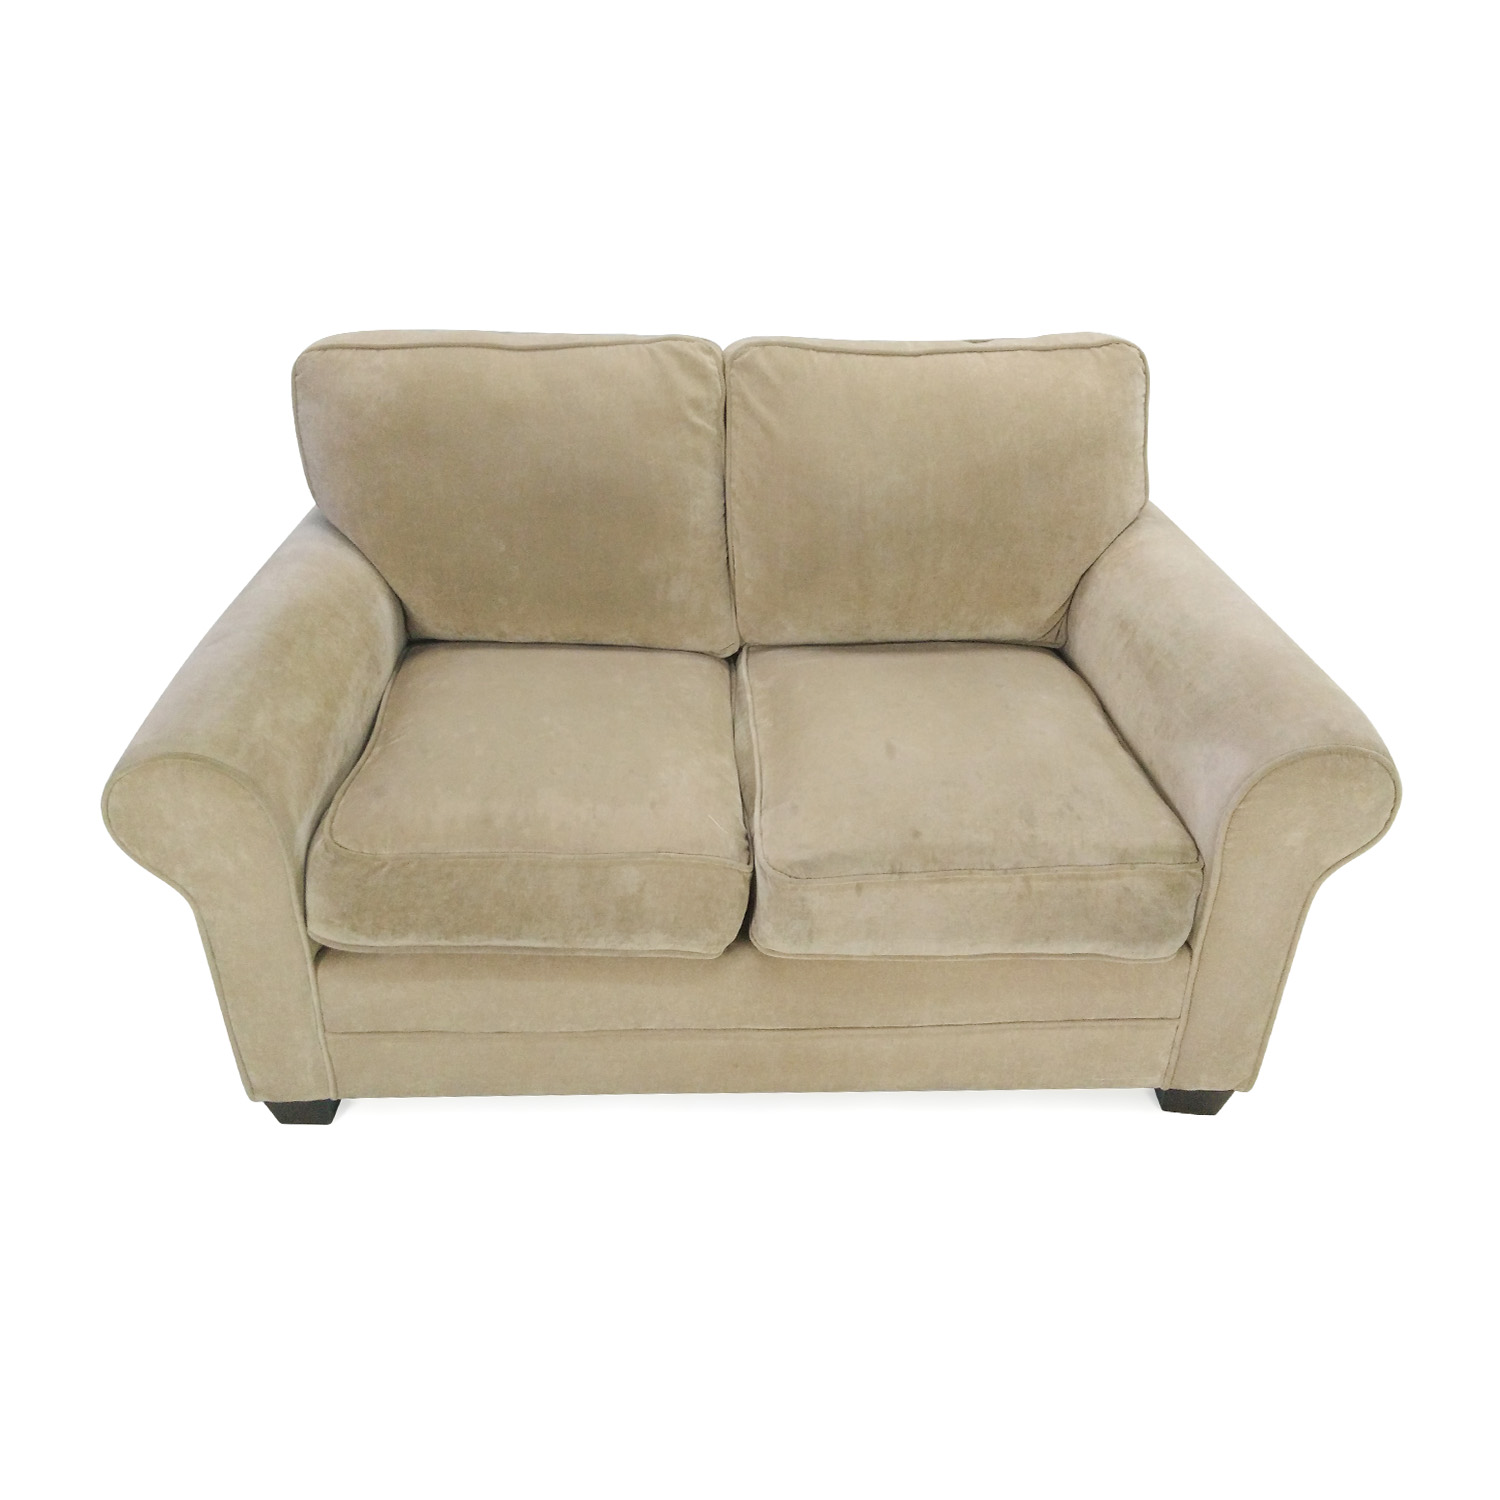 Peachy 57 Off Bobs Discount Furniture Bobs Comfy Loveseat Sofas Gamerscity Chair Design For Home Gamerscityorg